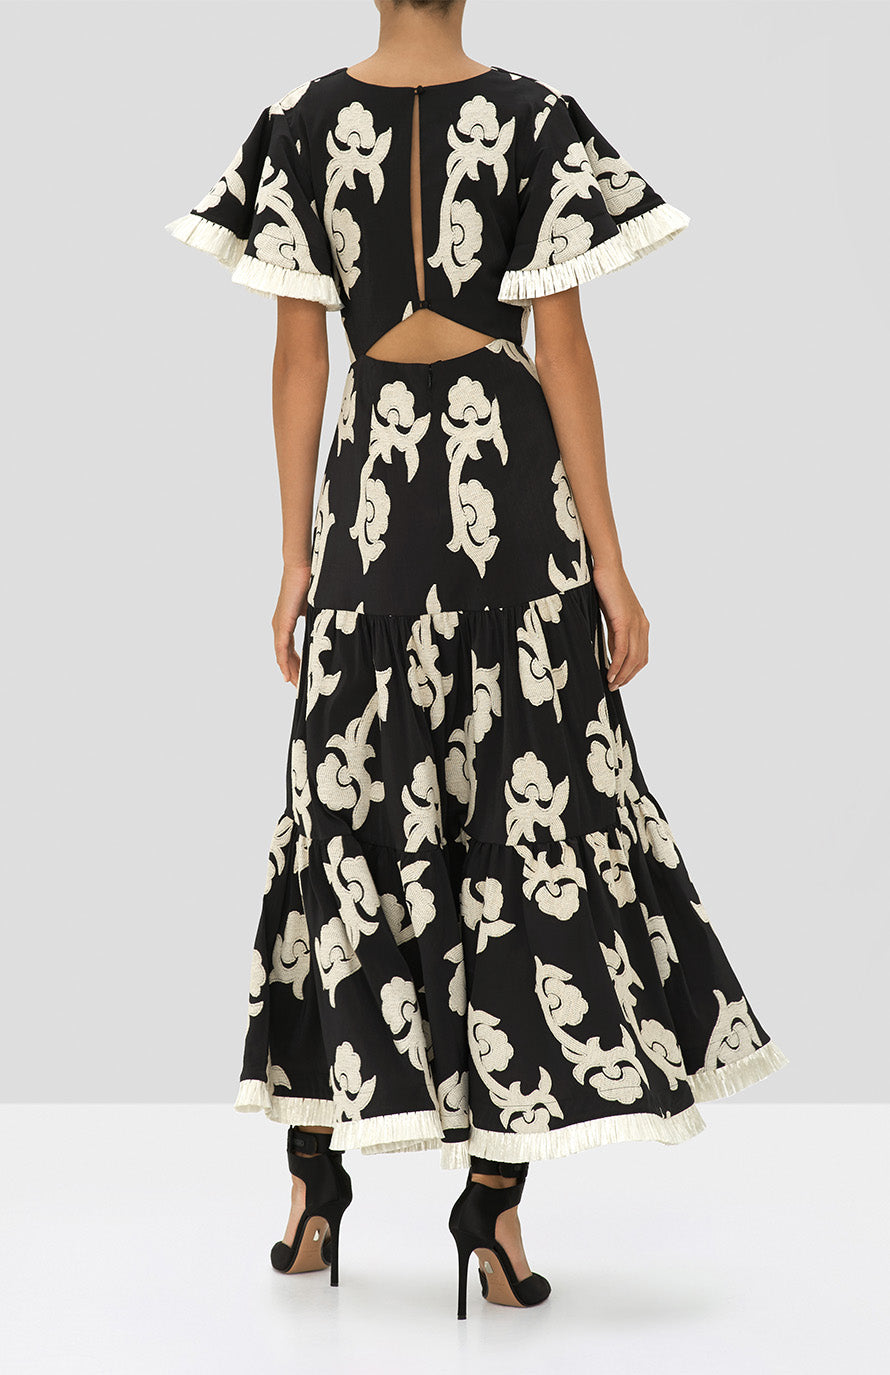 Alexis Calusa Dress in Black Embroidered Damask from the Holiday 2019 Ready To Wear Collection - Rear View